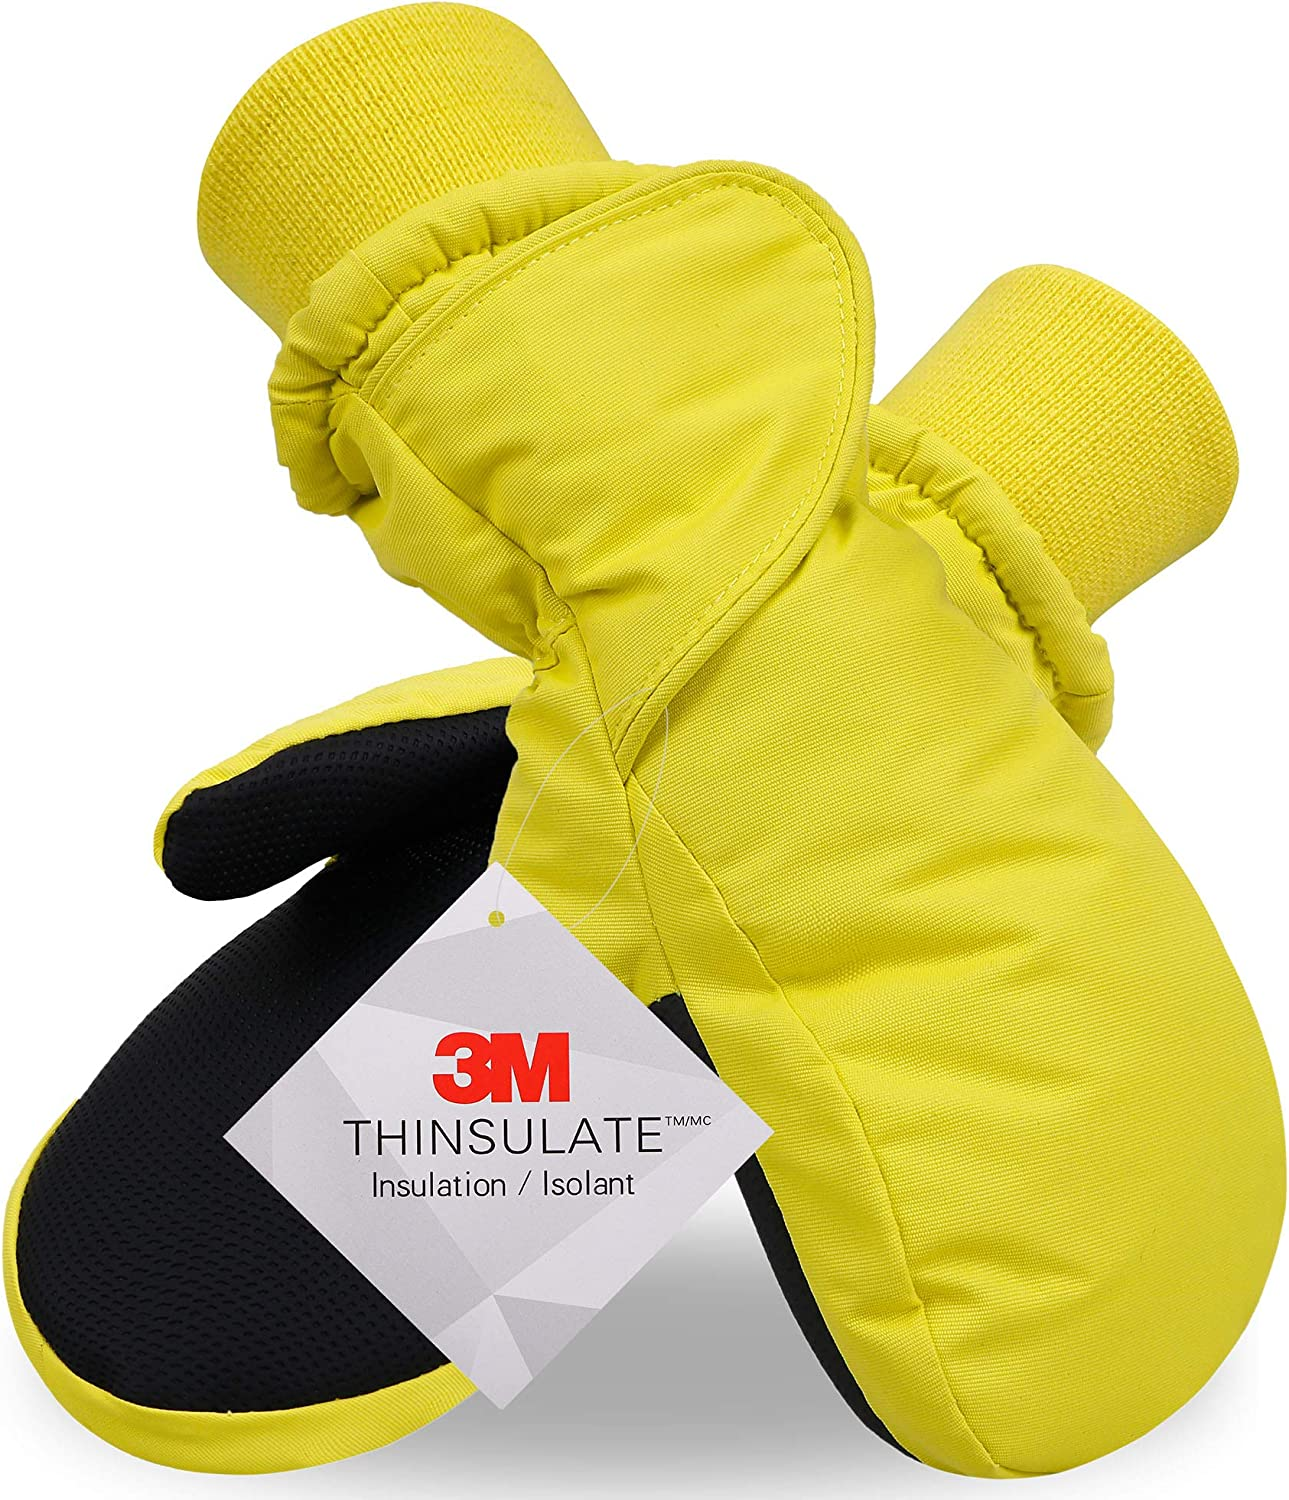 SimpliKids Childrens Snow Sports Thinsulate Insulation Waterproof Winter Mittens